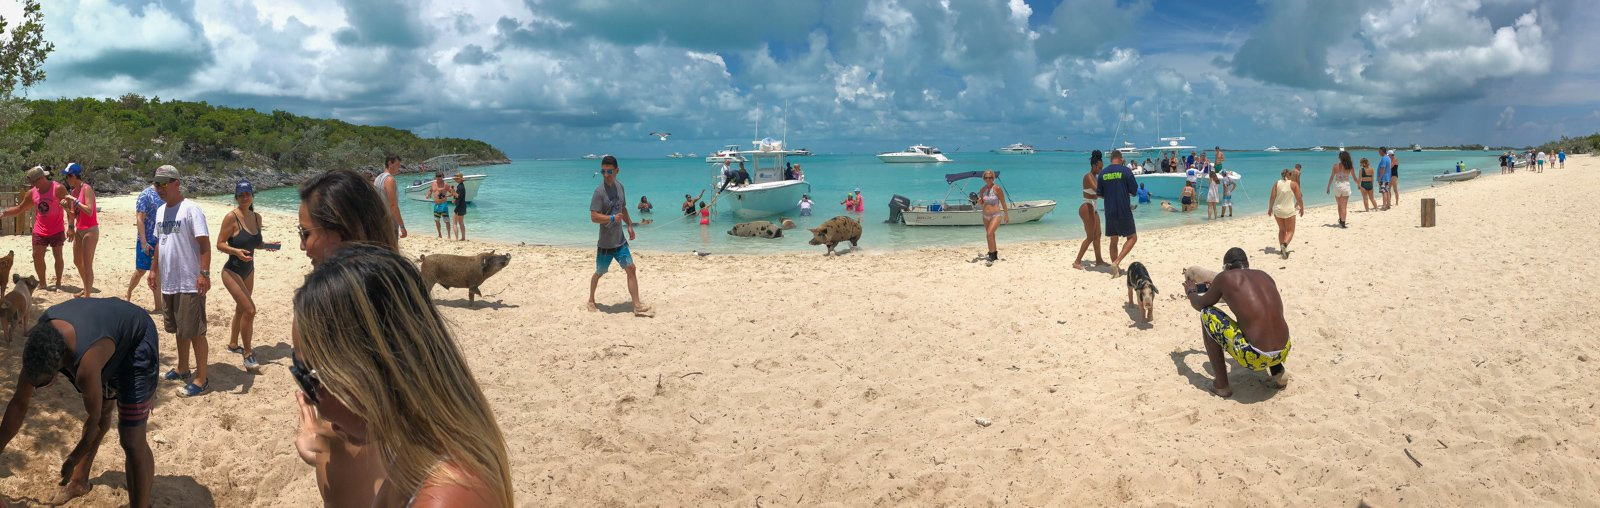 Pig Beach Bahamas: Guide to visiting the Bahamas Swimming Pigs